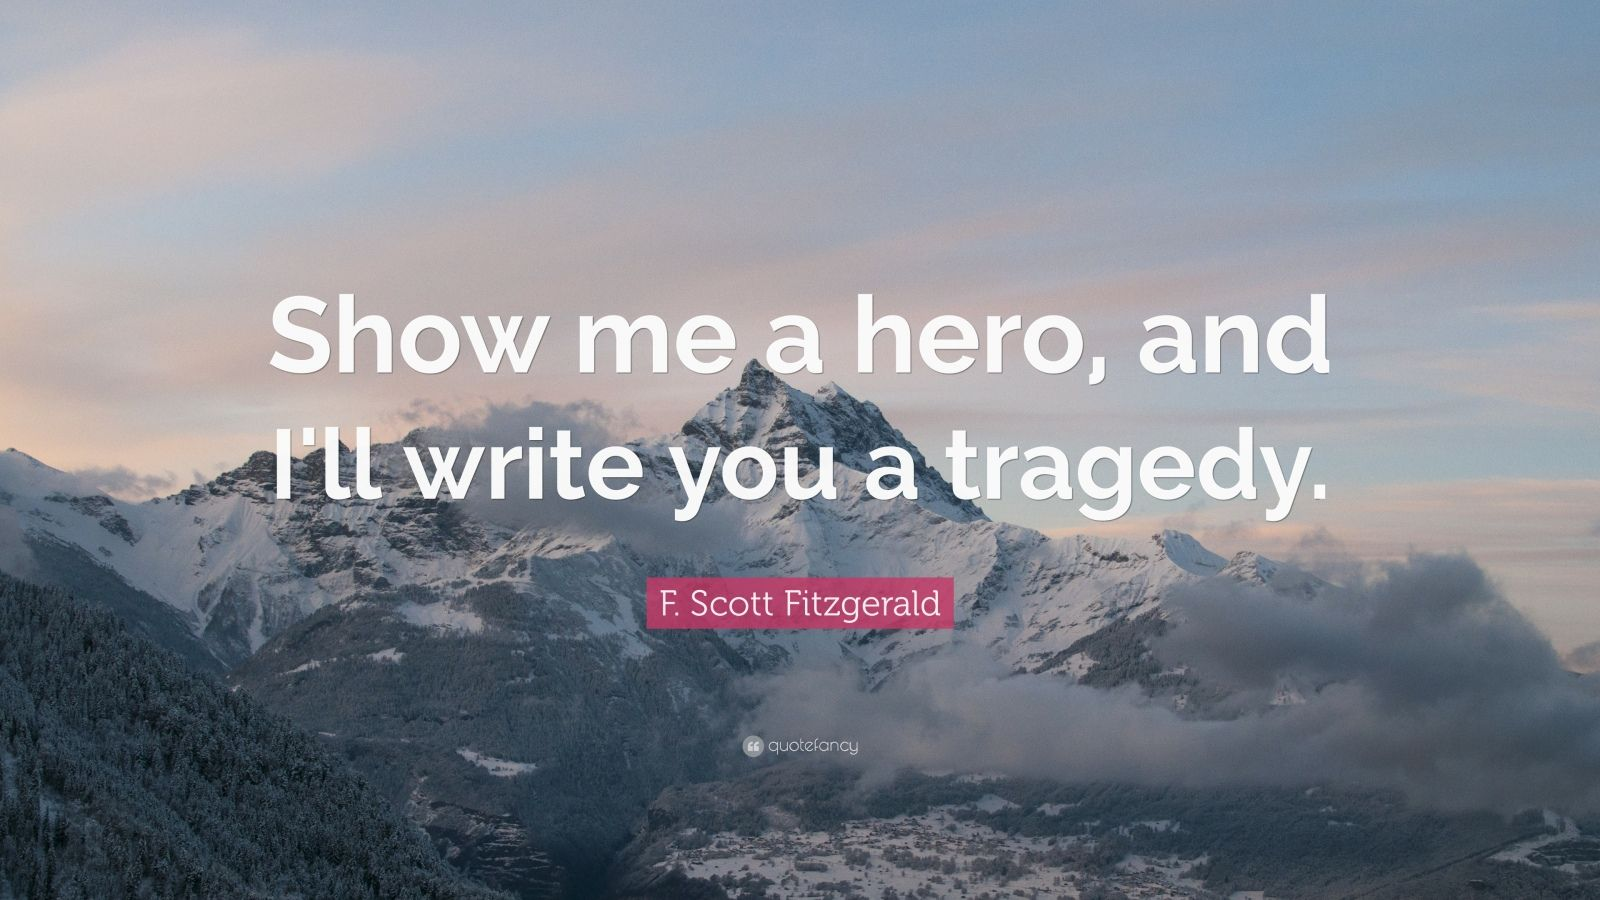 show me a hero and i ll show you a tragedy Show me a hero, and i will write you a tragedy – f scott fitzgerald - part 3 we apologize but this resource is not available to you please read below for more information.